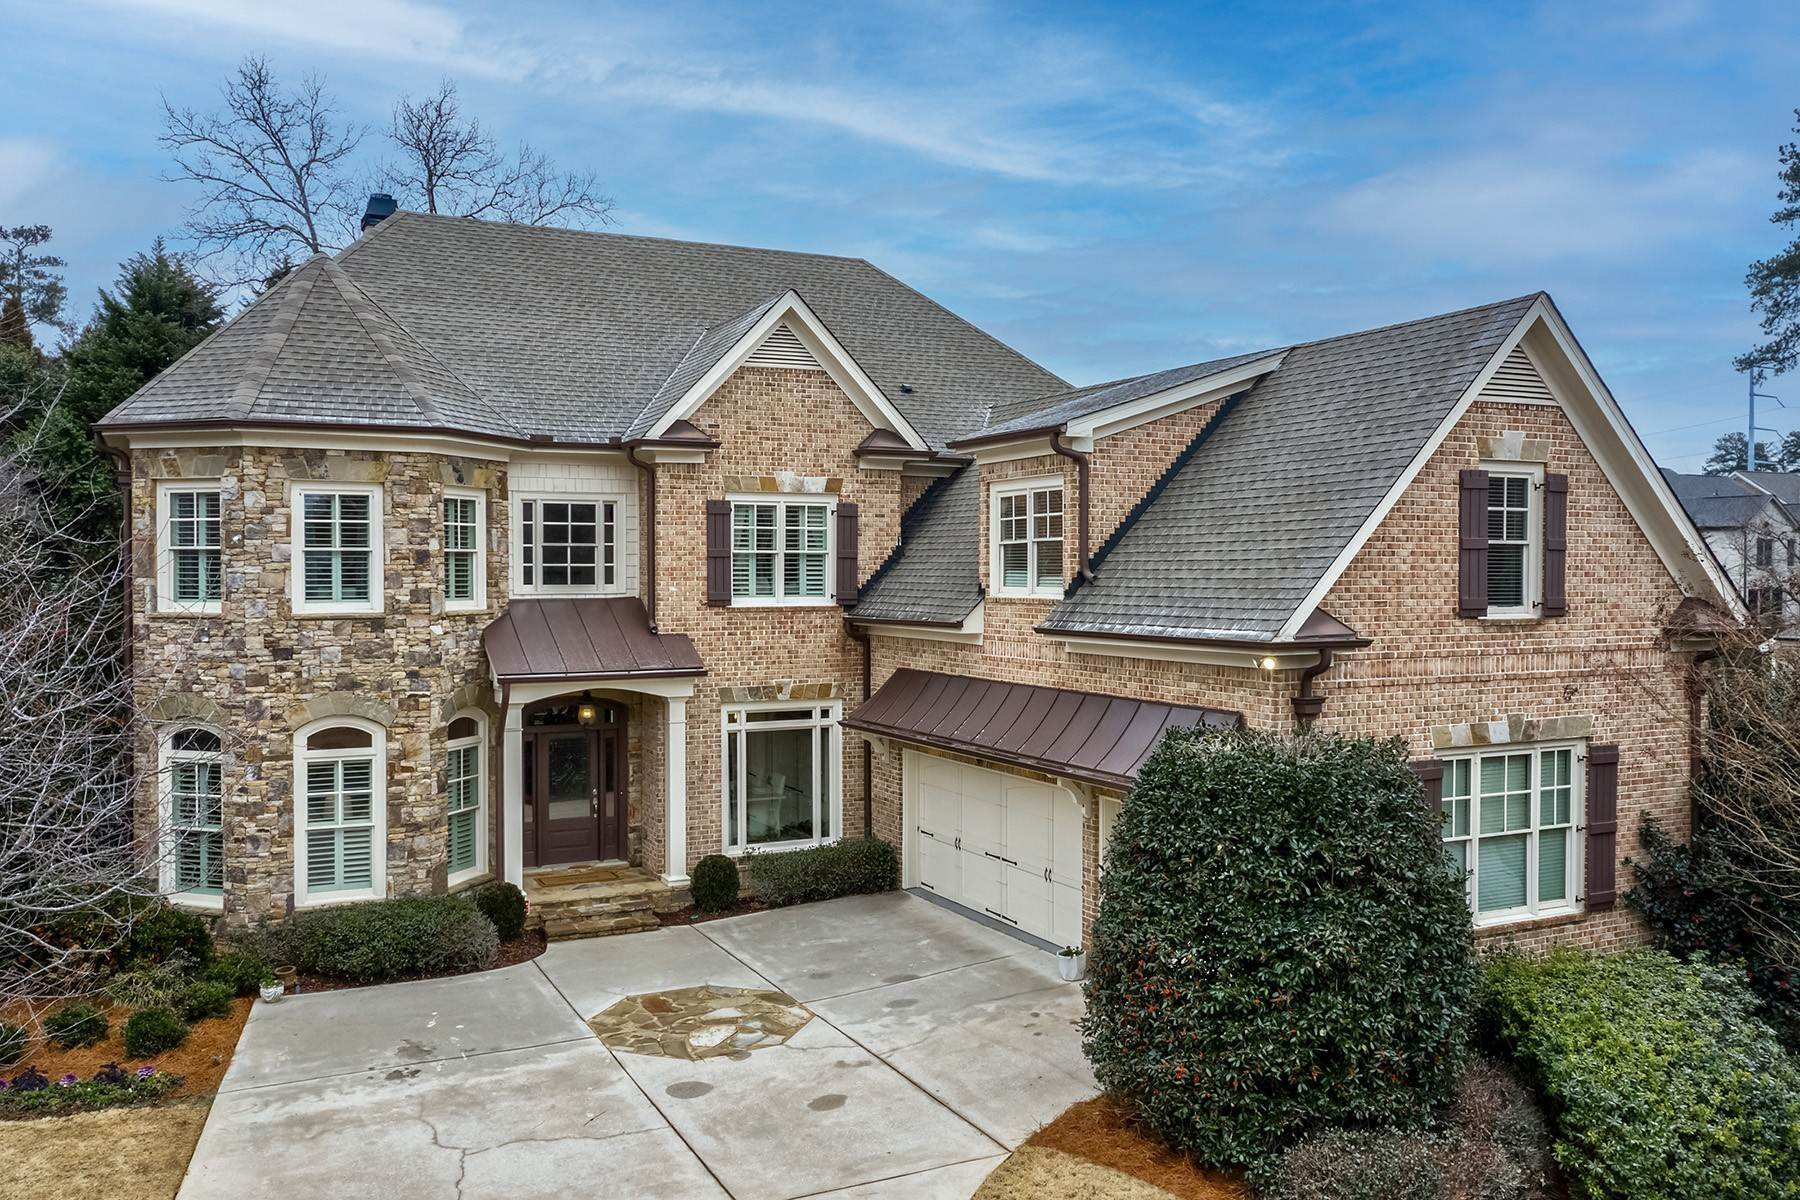 Single Family Homes for Active at Stunning Executive Home in Chastain Park Sandy Springs 104 Silverwood Road Sandy Springs, Georgia 30342 United States